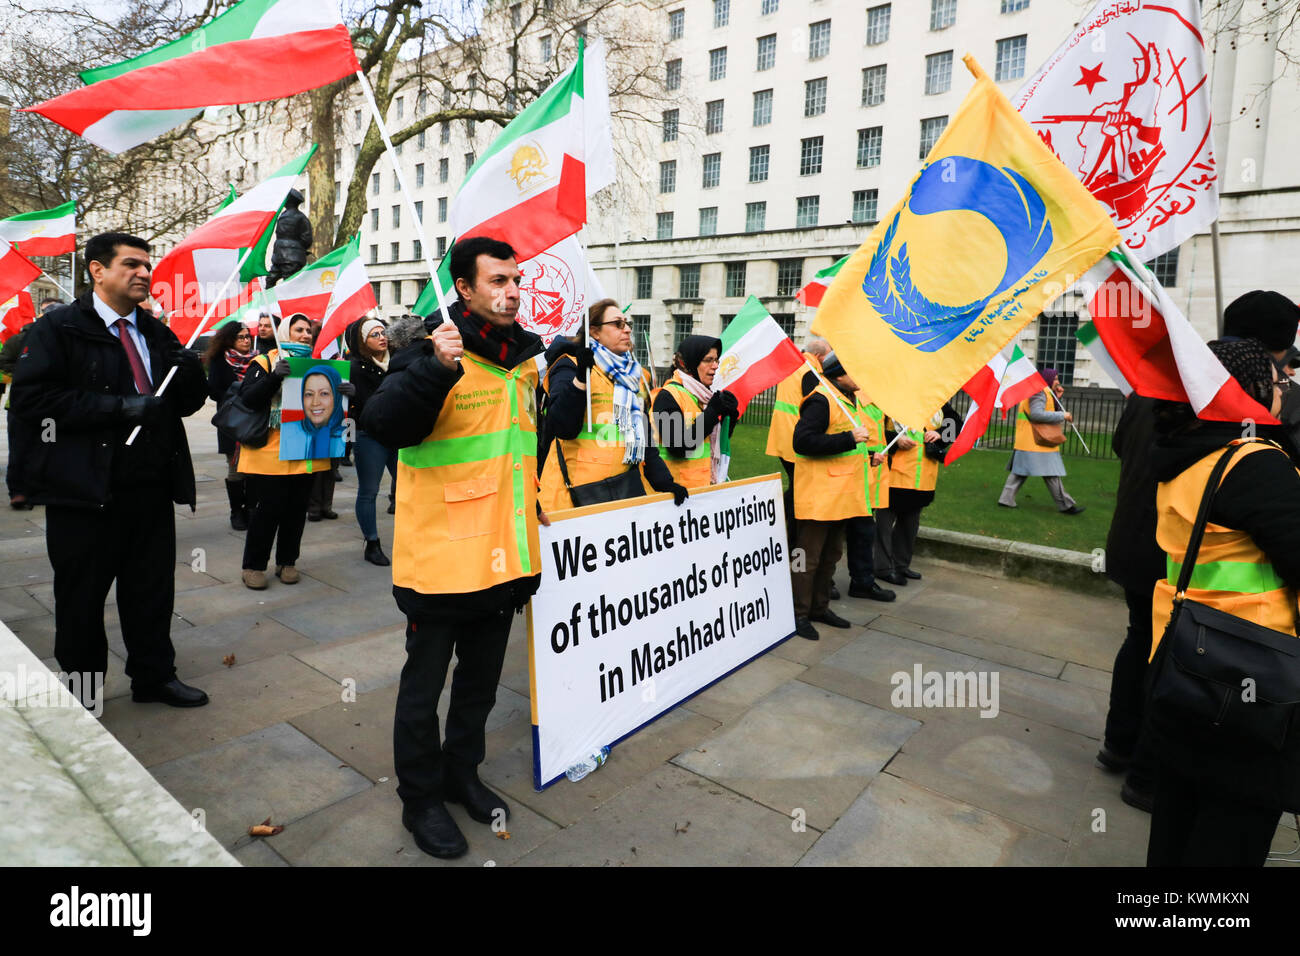 London UK. 4th January 2018. A rally outside No 10 Downing Street  by members of Iran's opposition, the National Stock Photo